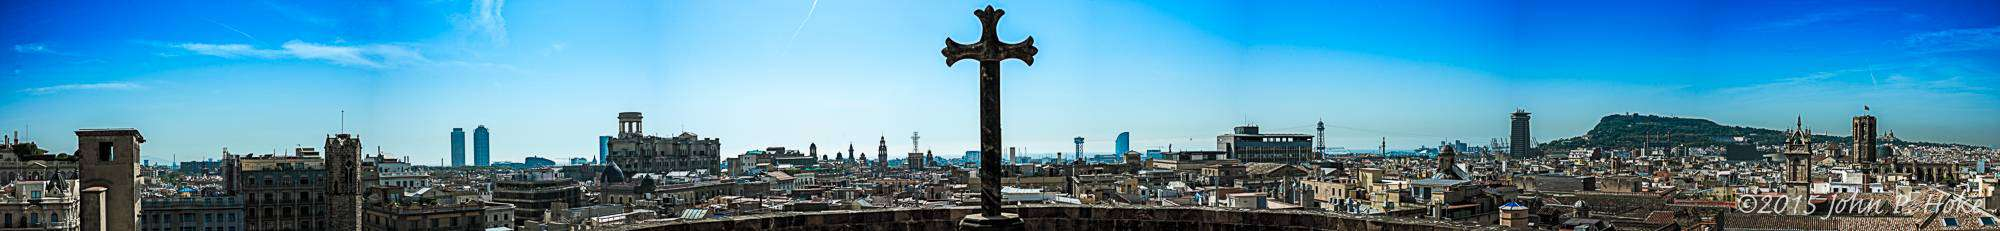 Panoramic view of Barcelona from the top of the Cathedral of Barcelona